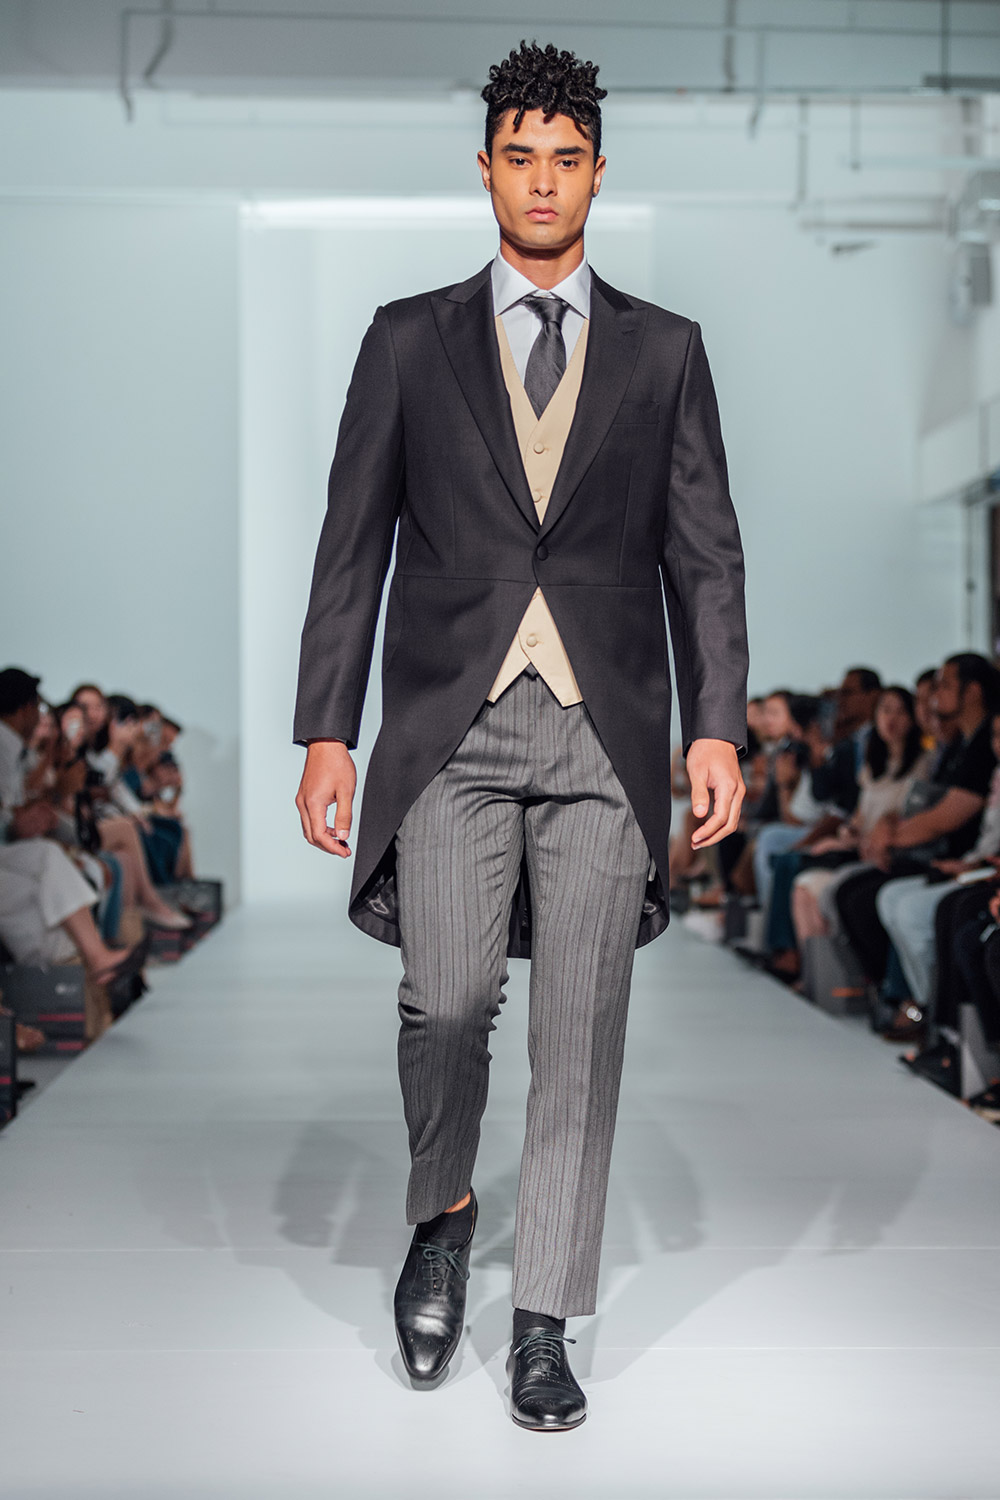 Sacoor Brothers Fall 2019 Collection at WAF2019. www.theweddingnotebook.com